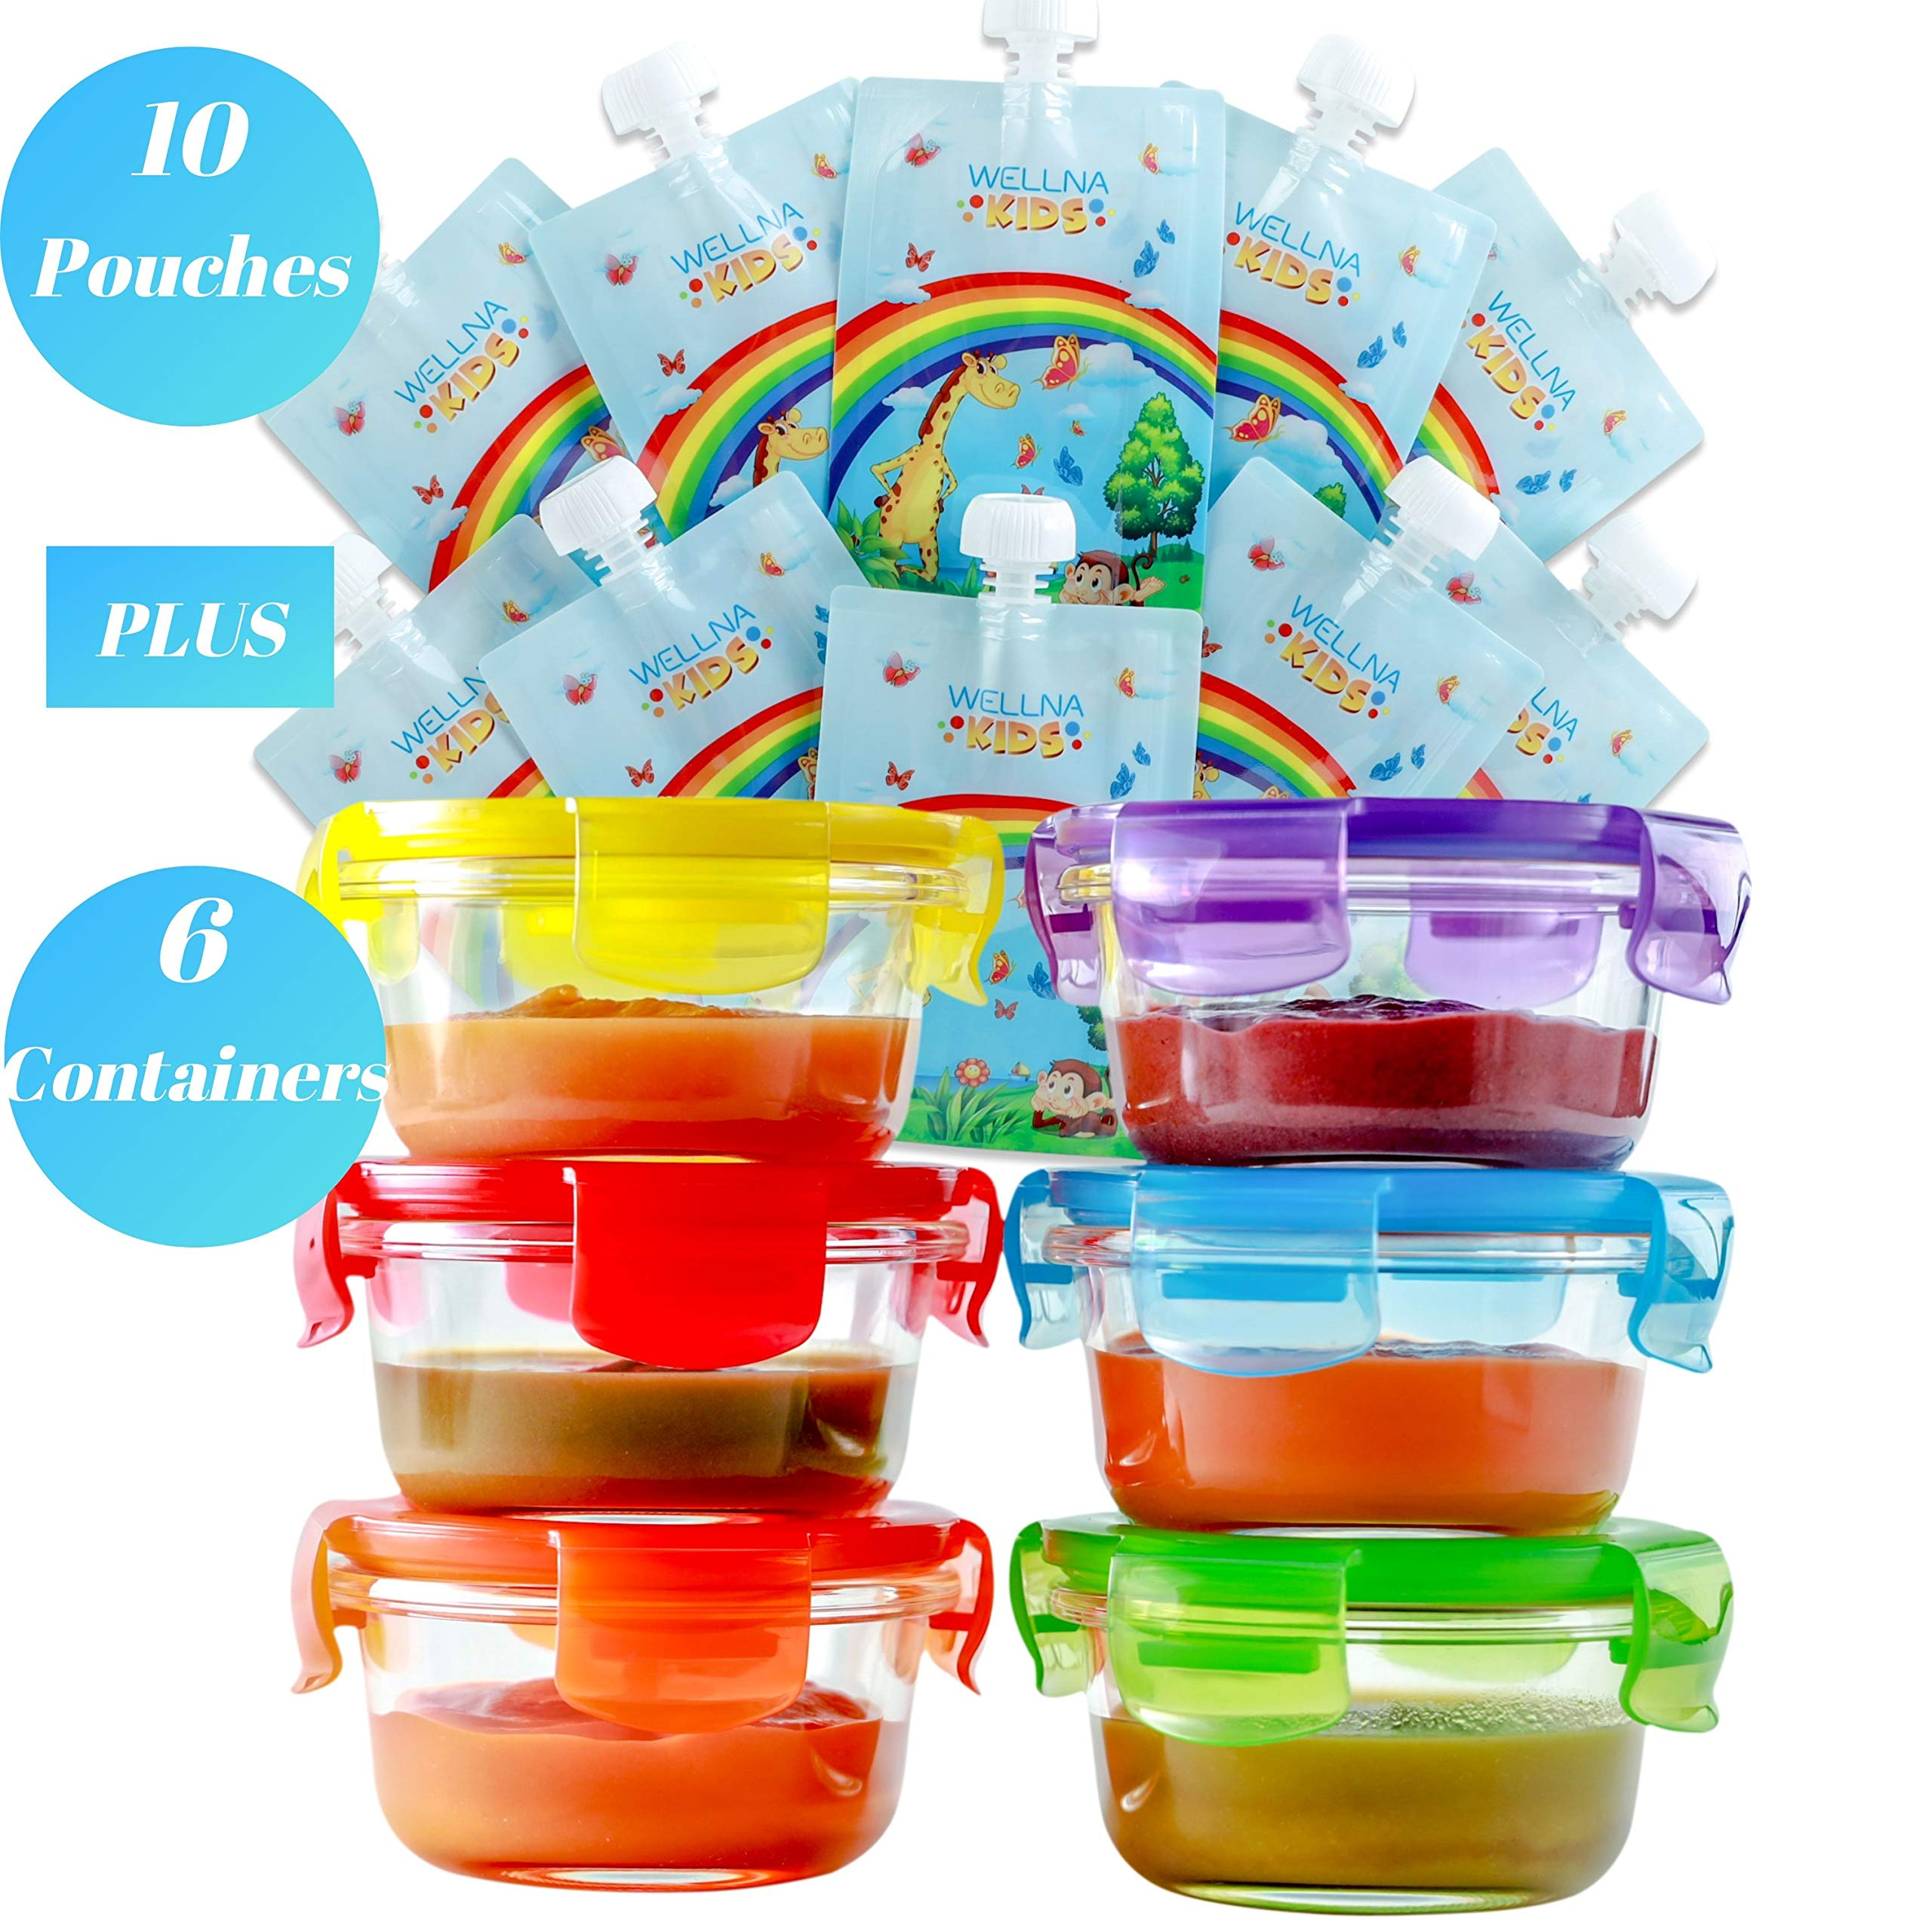 Glass Baby Food Storage Containers & Food Pouches - Set of 6 Baby Food Containers (6 Oz) and 10 Reusable Food Pouches (7 Oz), BPA Free, Freezer, Microwave and Dishwasher Safe, Airtight Lids